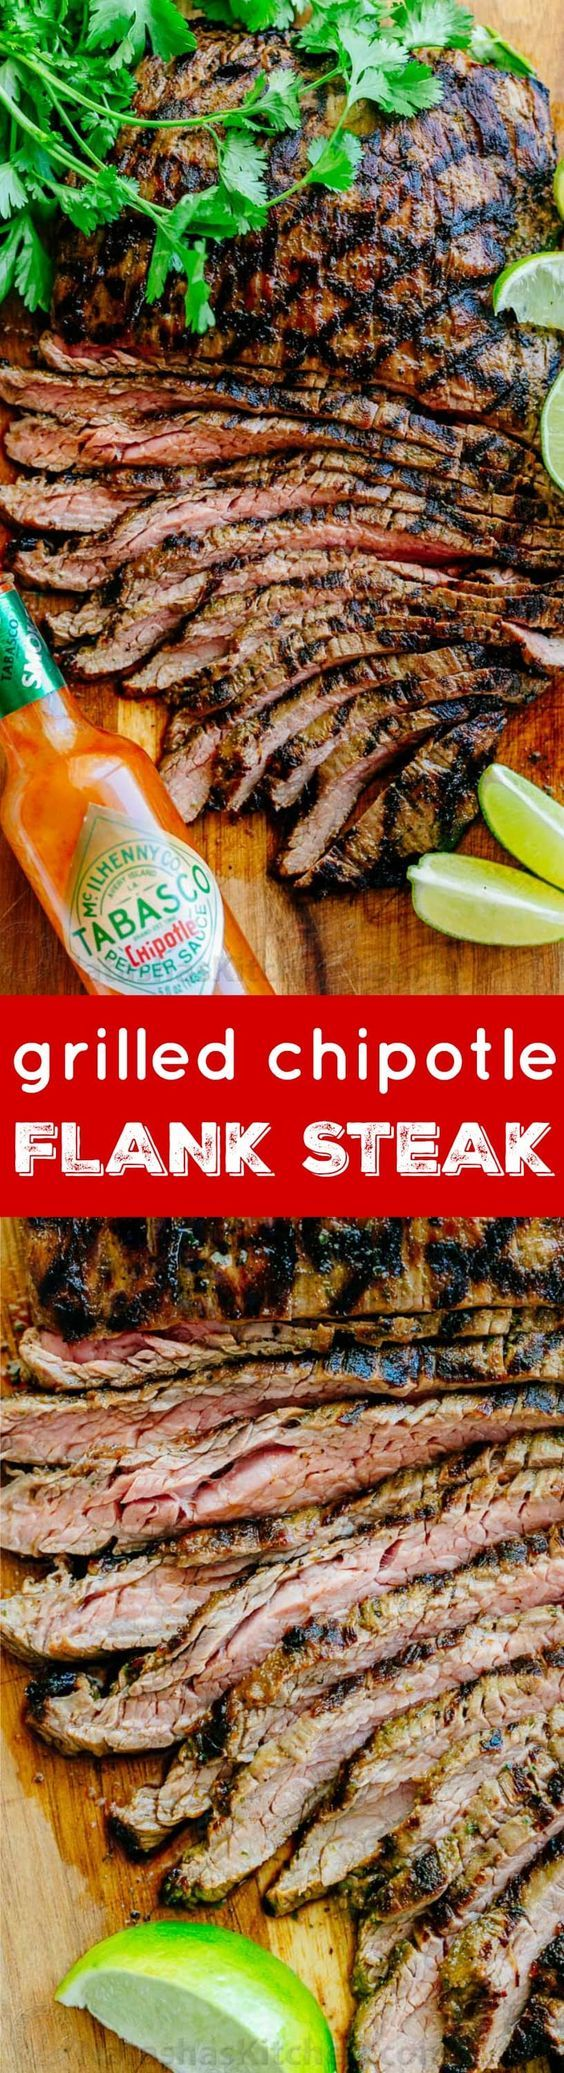 Go-to flank steak recipe! The marinade is so easy with just a few ingredients. This chipotle flank steak has incredible flavor and the SECRET ingredient is... | natashaskitchen.com